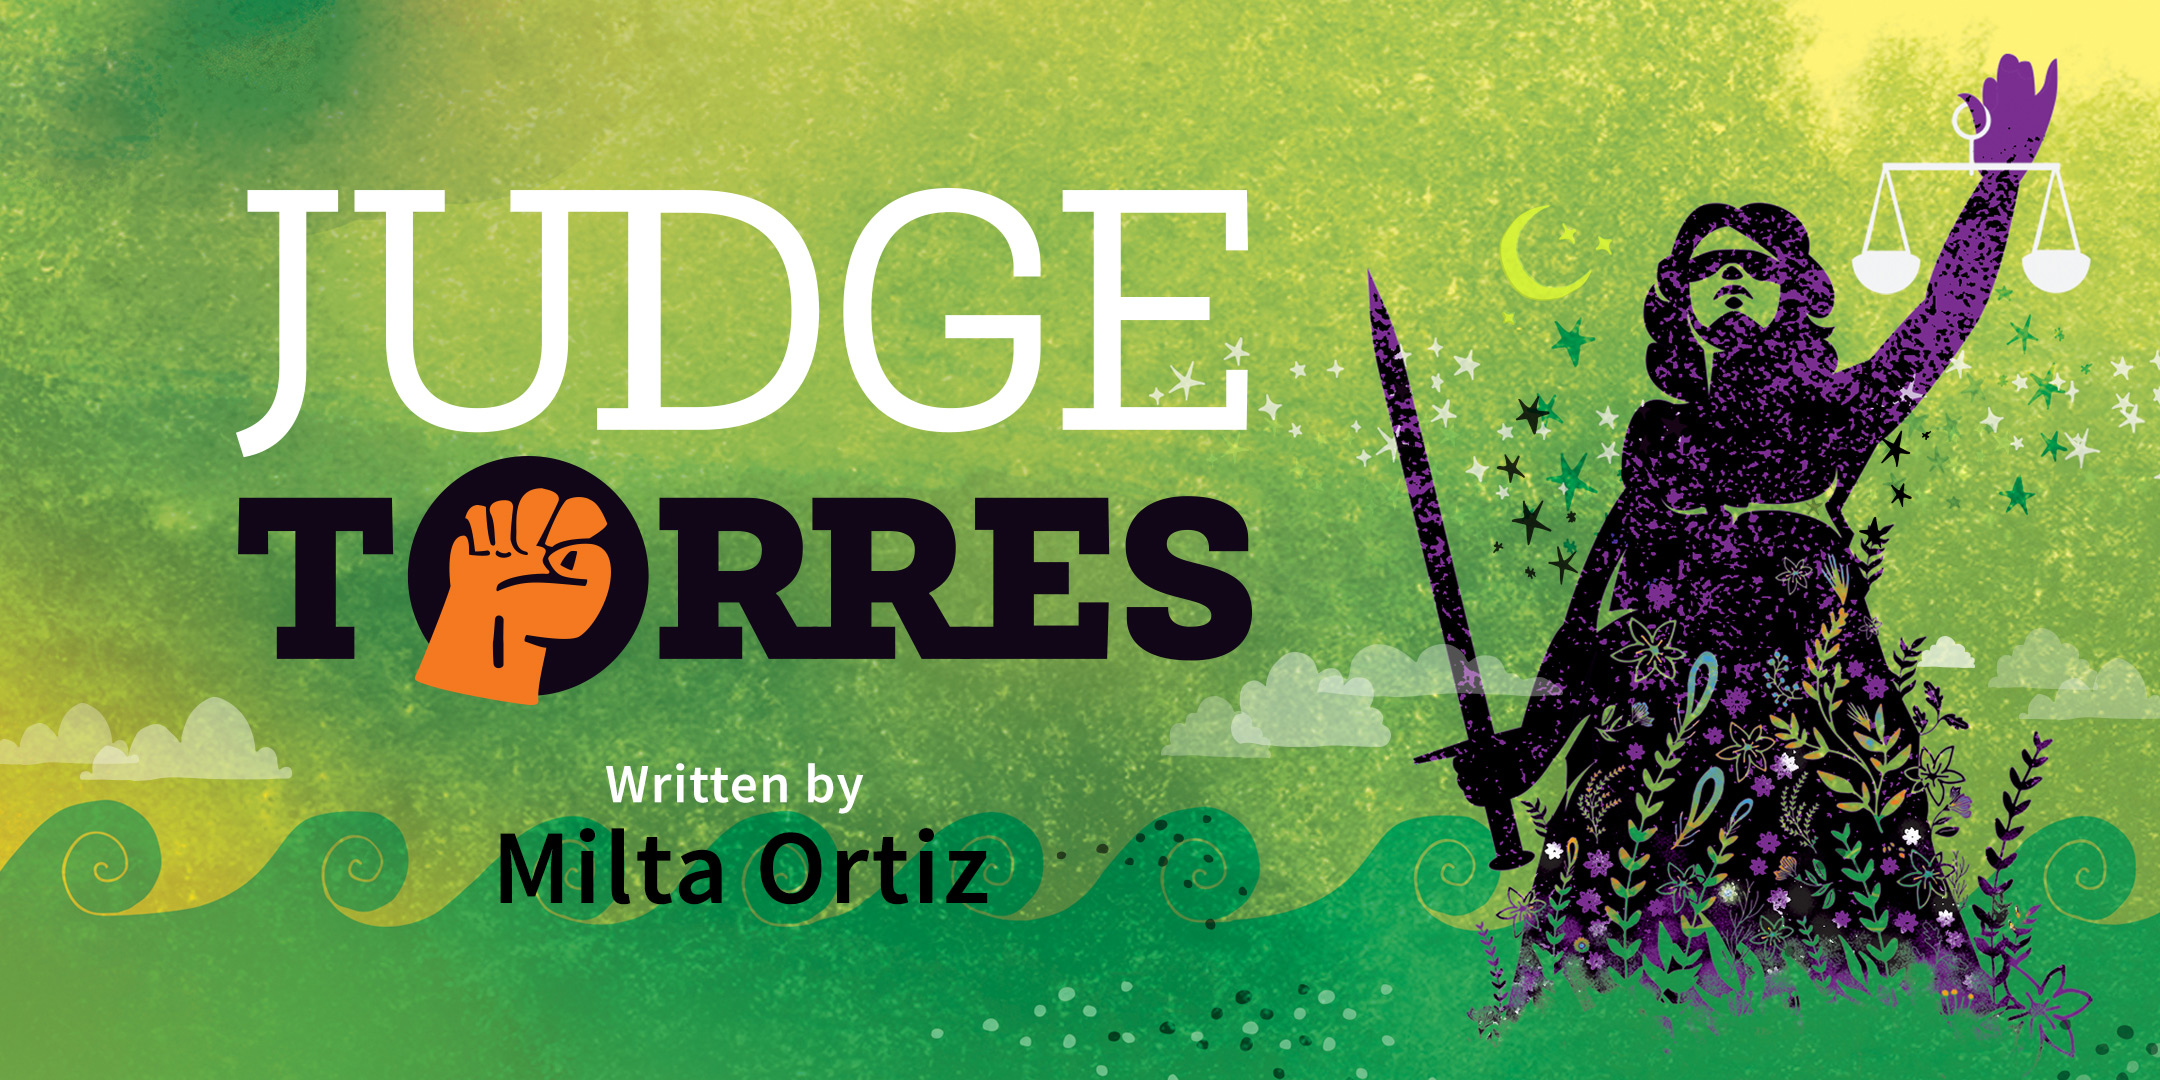 Judge Torres, an image of lady justice